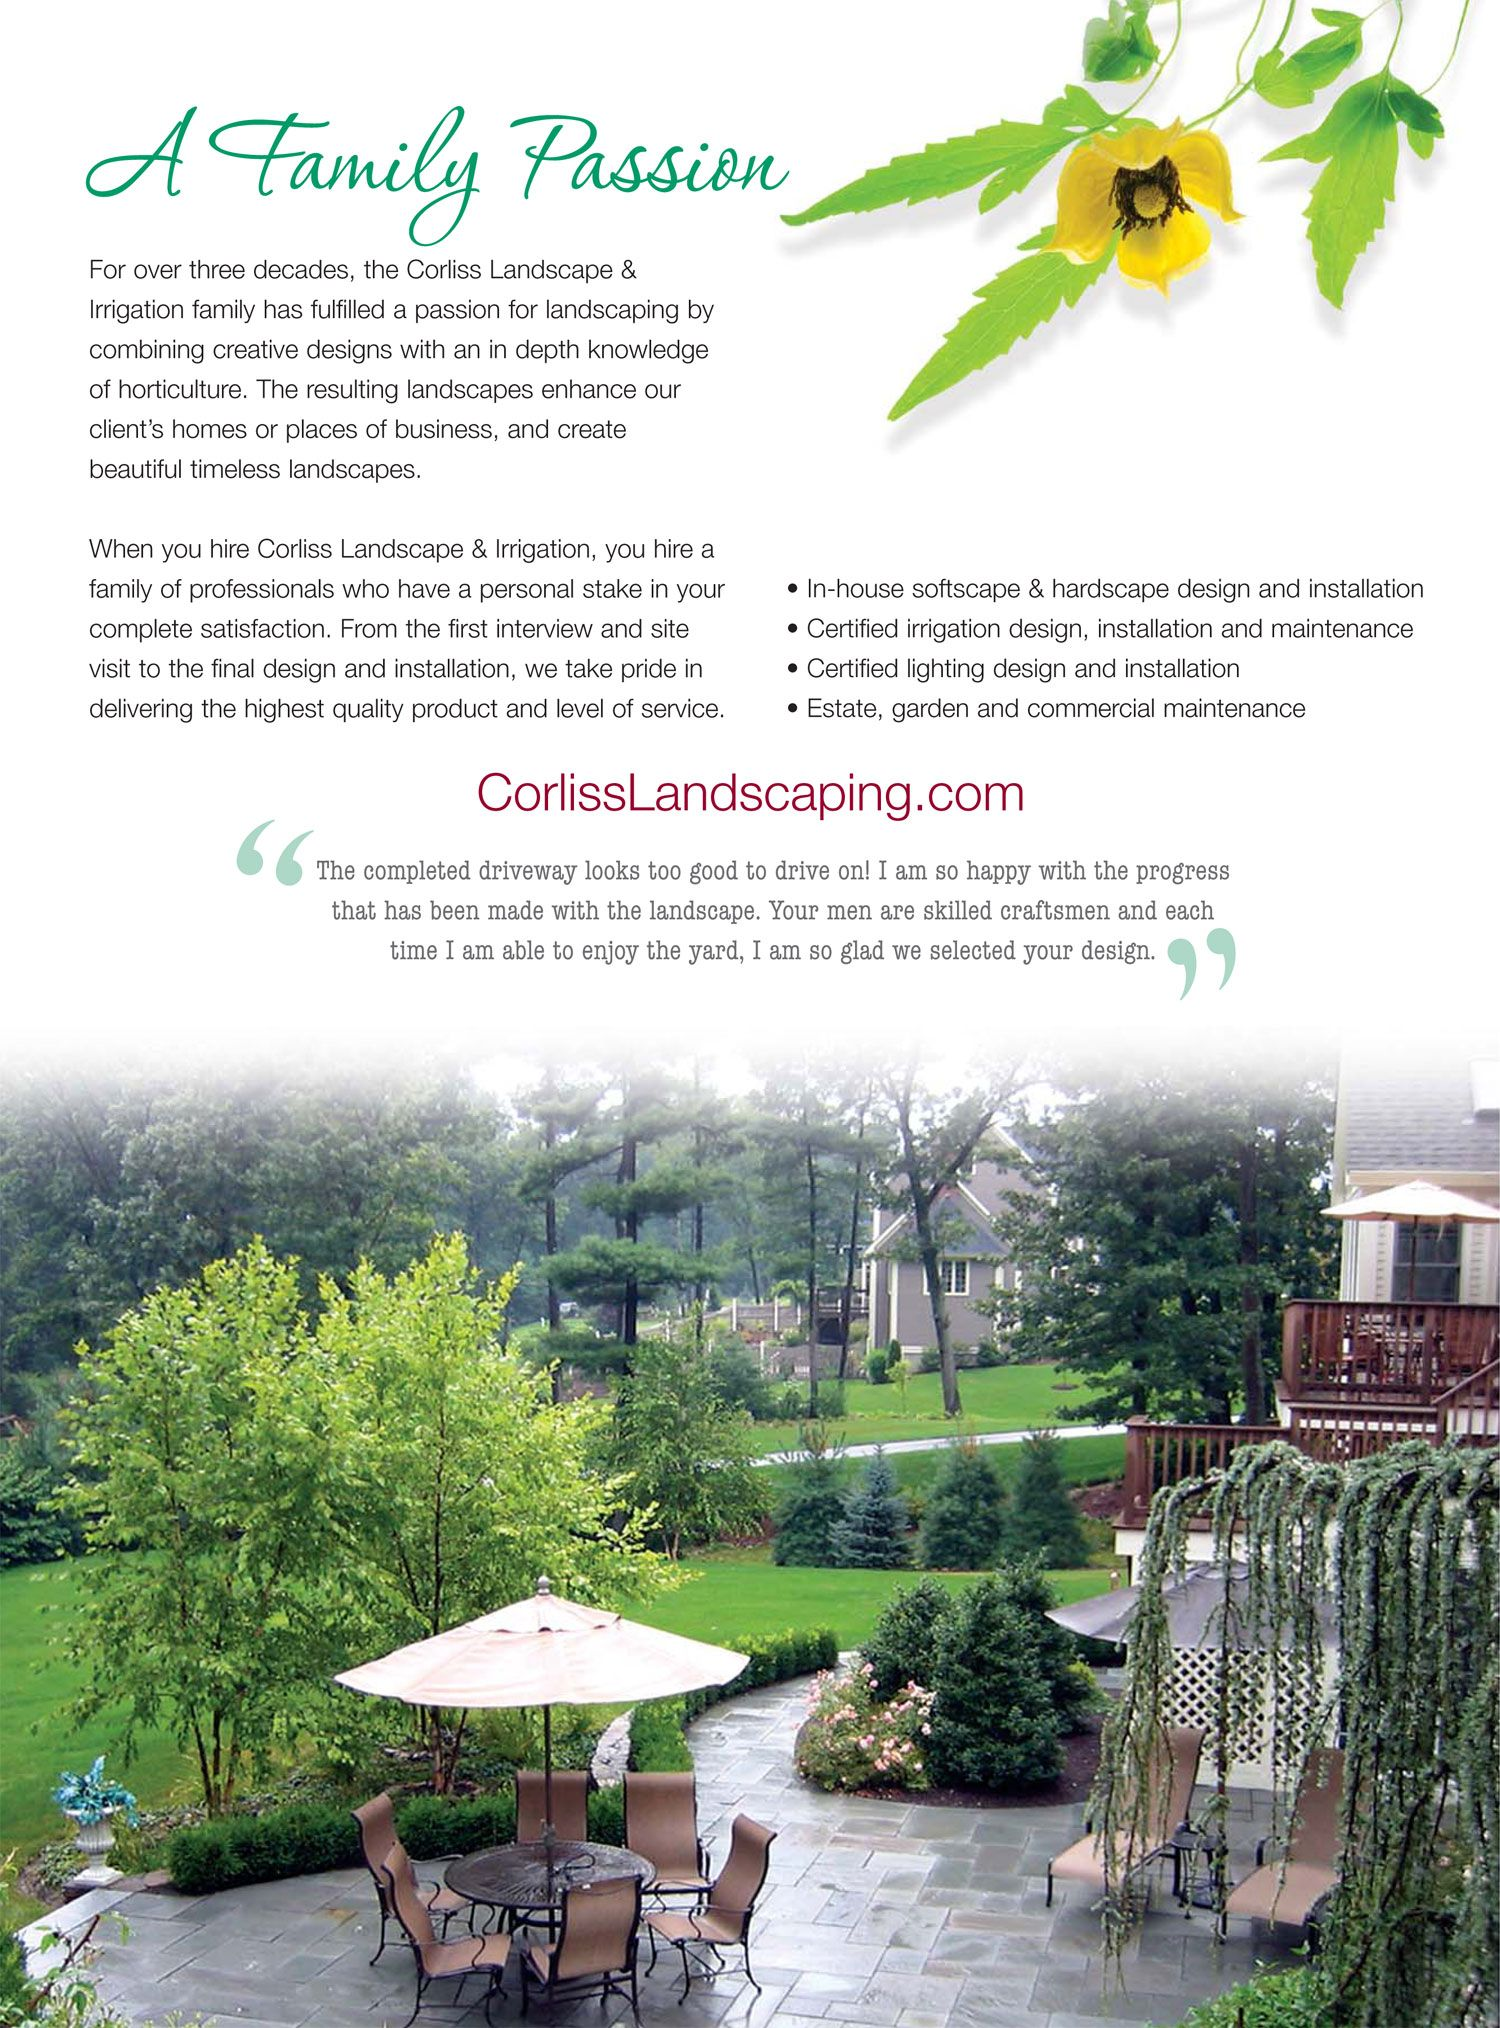 Do It Yourself Landscaping Tips And Hints Useful Garden Ideas And Tips Landscaping Tips Gardening For Beginners Gardening Tips